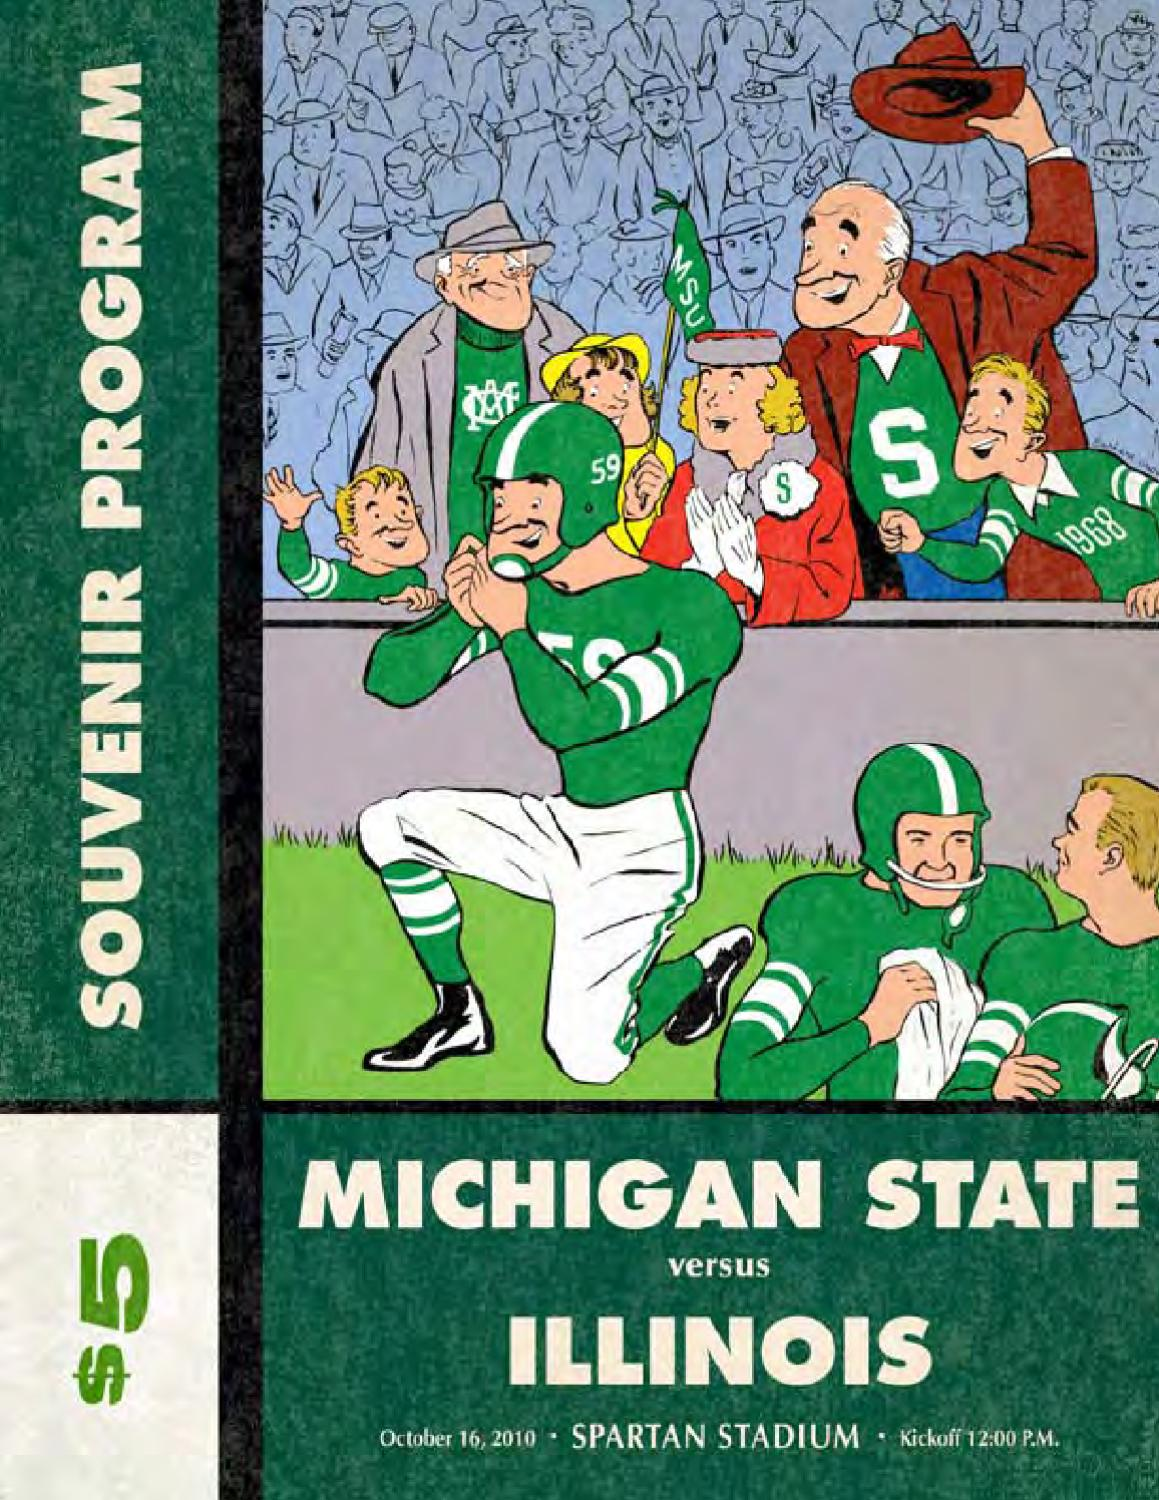 2010 Michigan State Football Magazine Illinois By Ben Phlegar Issuu Hialeah Meter Co Wiring Diagram For Single Phase 2s 2016 Car Release